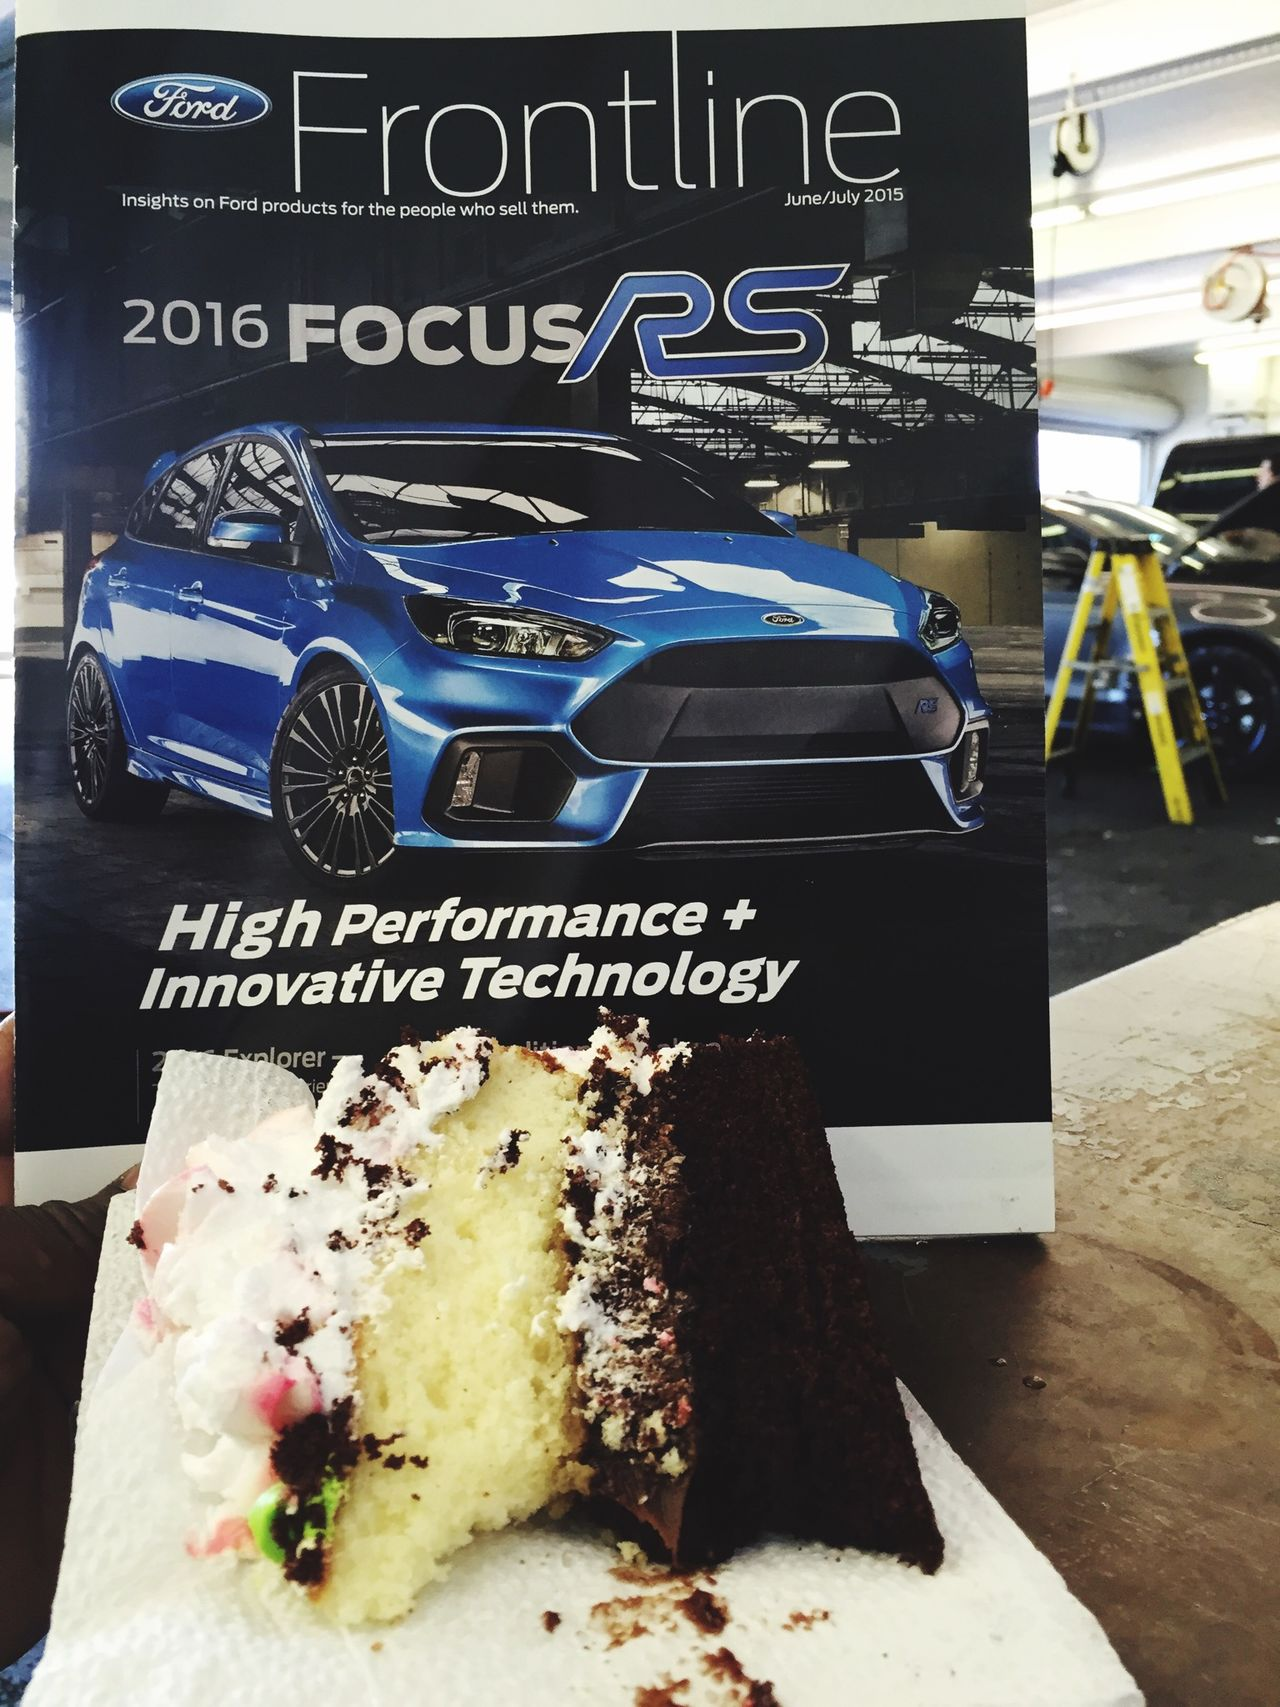 Food Porn Awards at work eating cake and drooling over the new 2016 FORD FOCUS RS Pixxzo 🙏🏾📷 Repairs Newcar